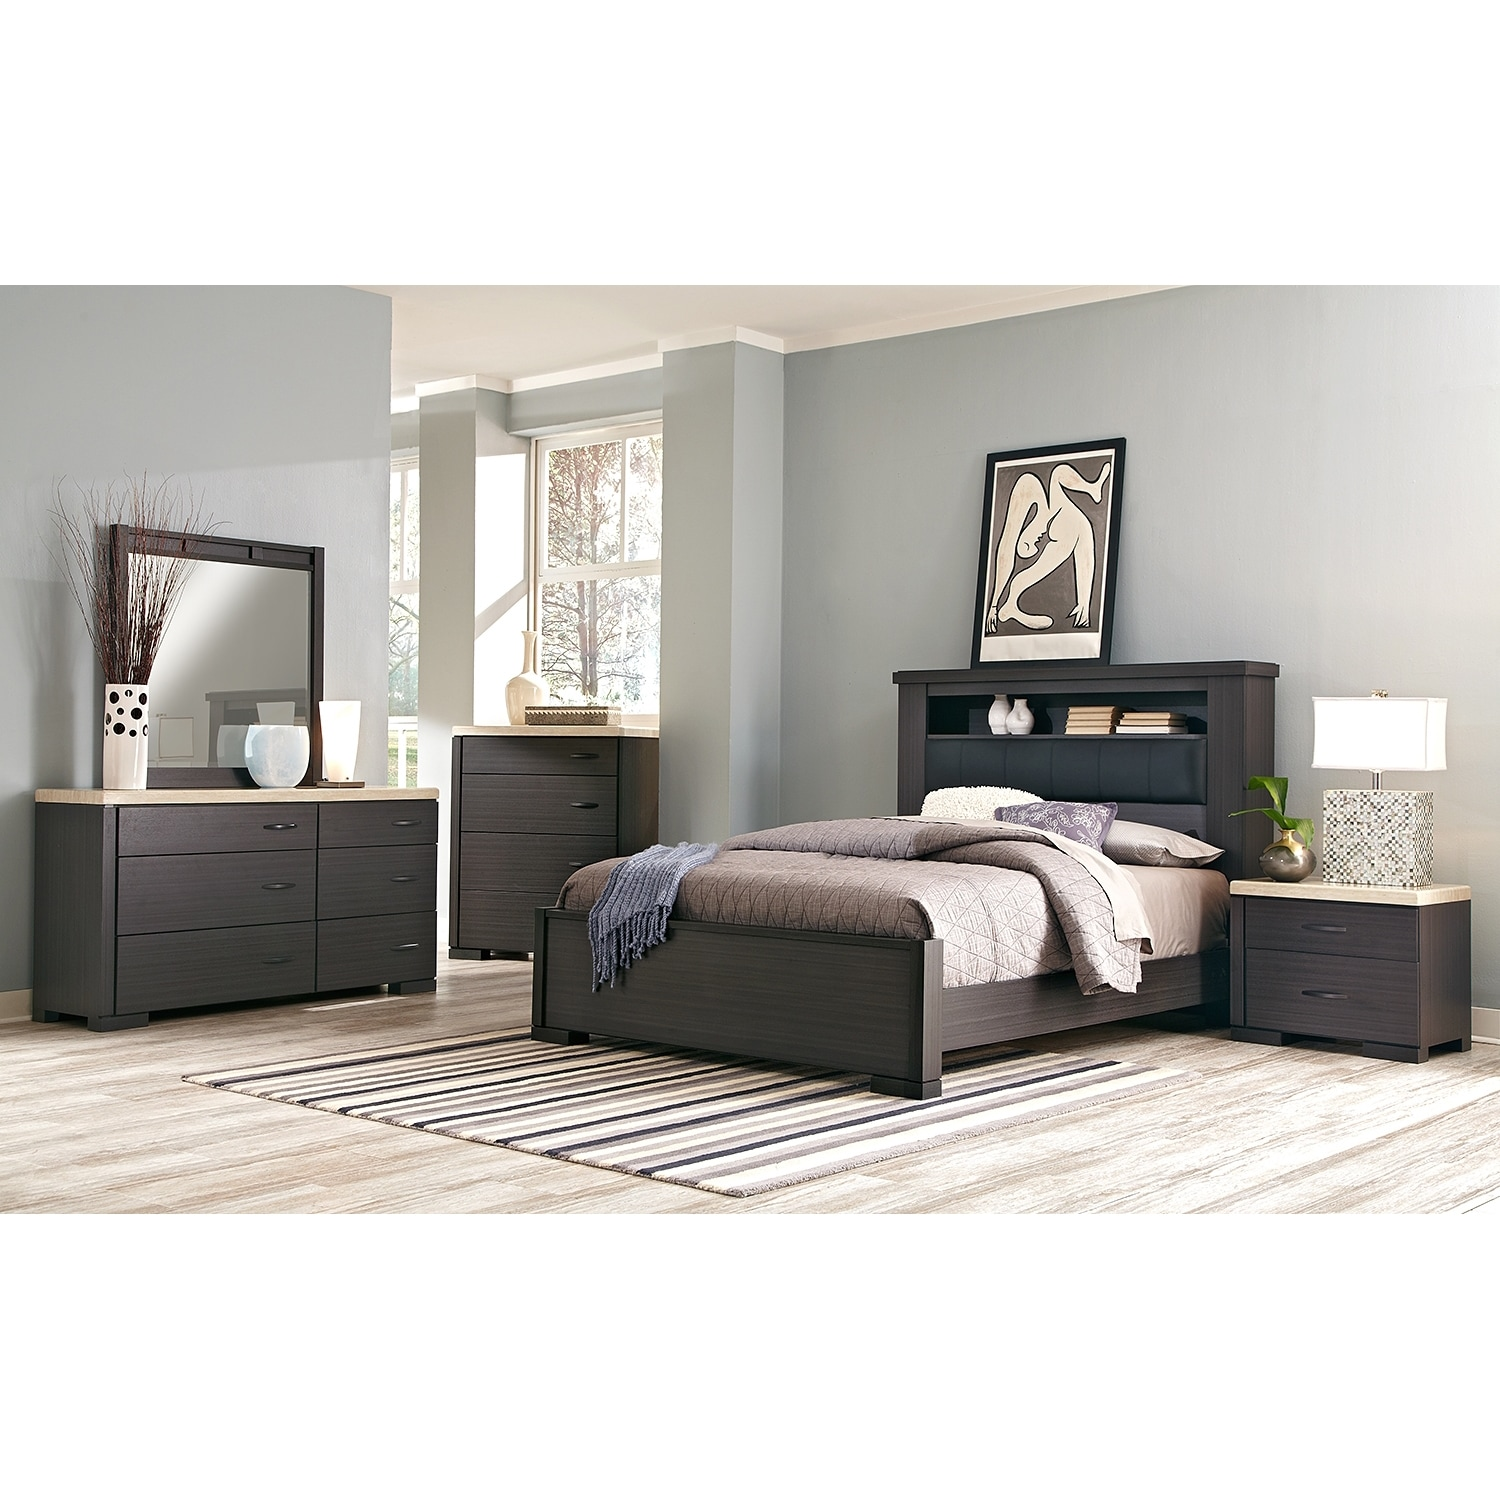 Camino 7 piece queen bedroom set charcoal and ivory for Signature furniture